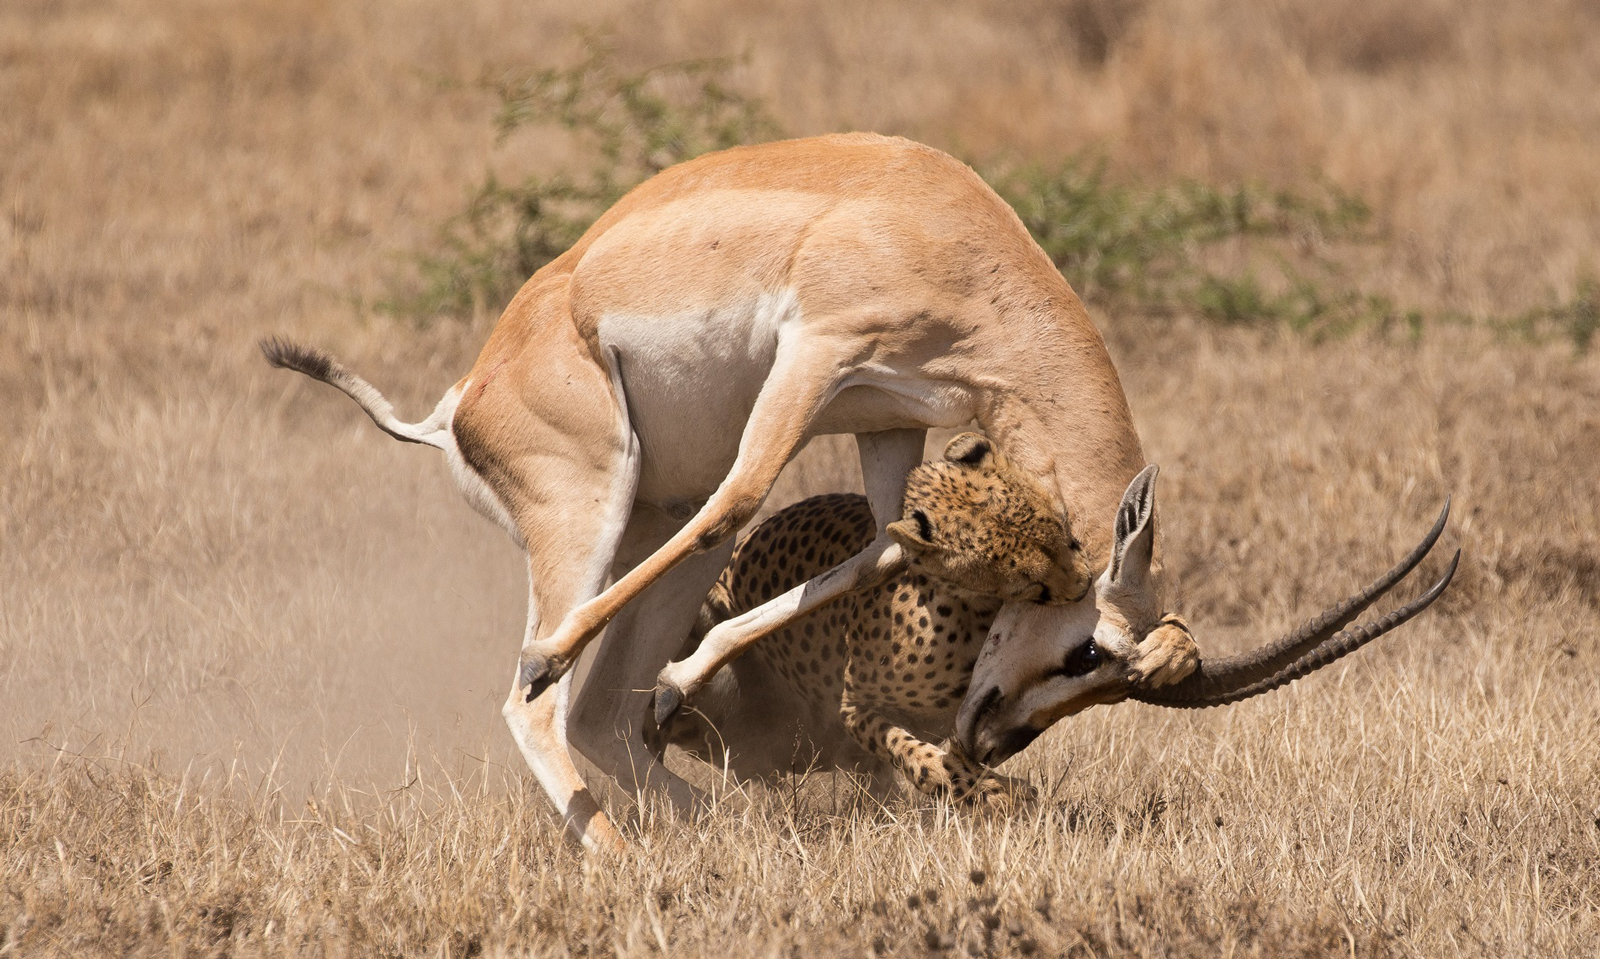 """The kiss of death"" in Ndutu, Tanzania ©Alison Mees"